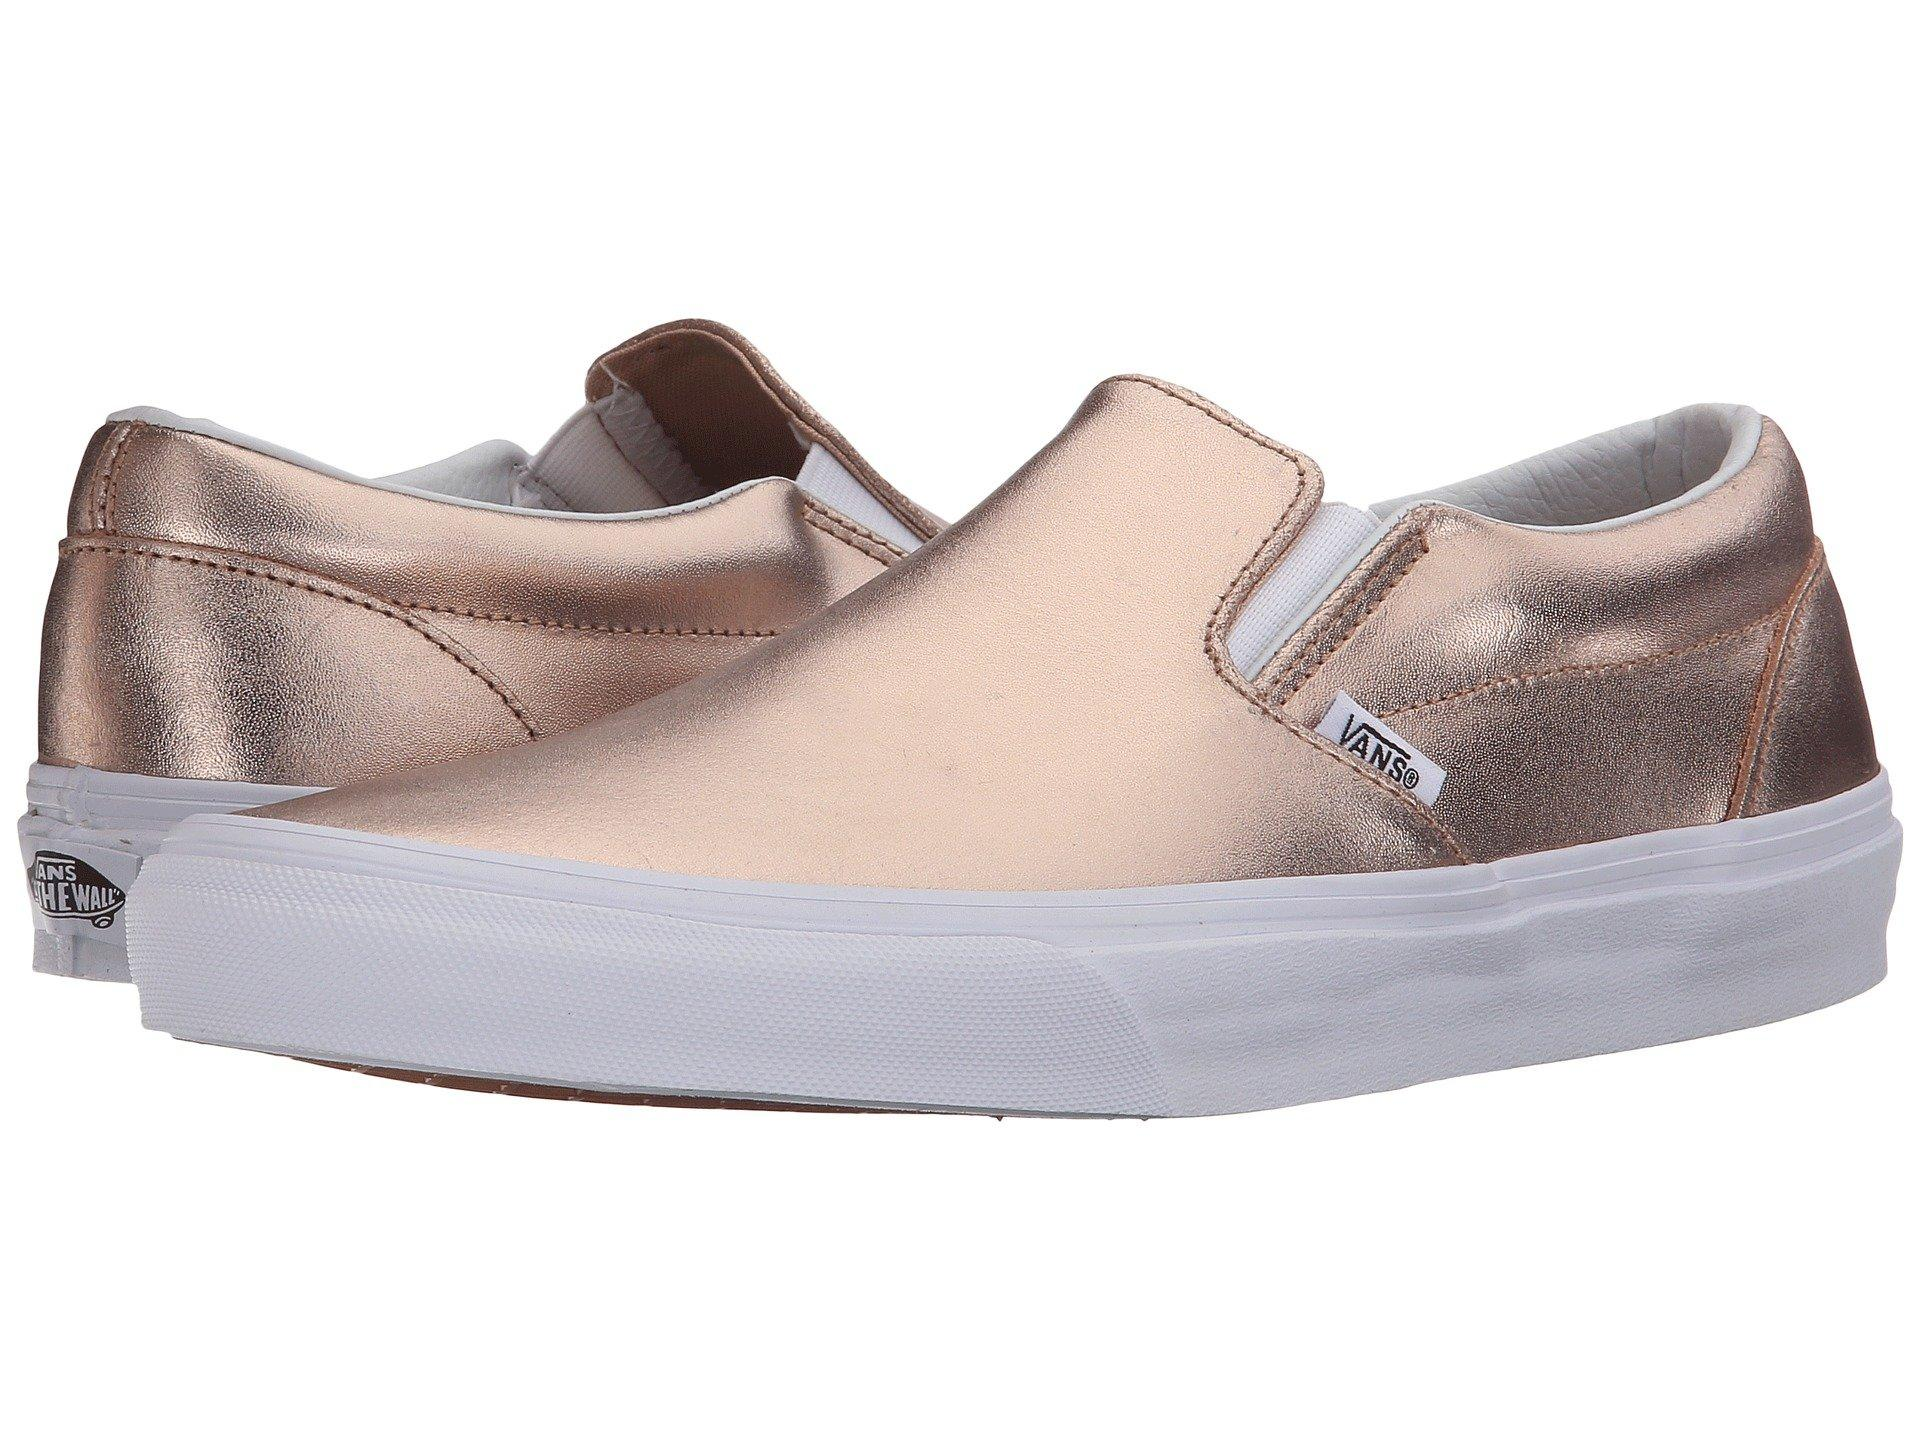 598edf618e67 Vans Classic Slip-On™ In (Metallic Leather) Rose Gold